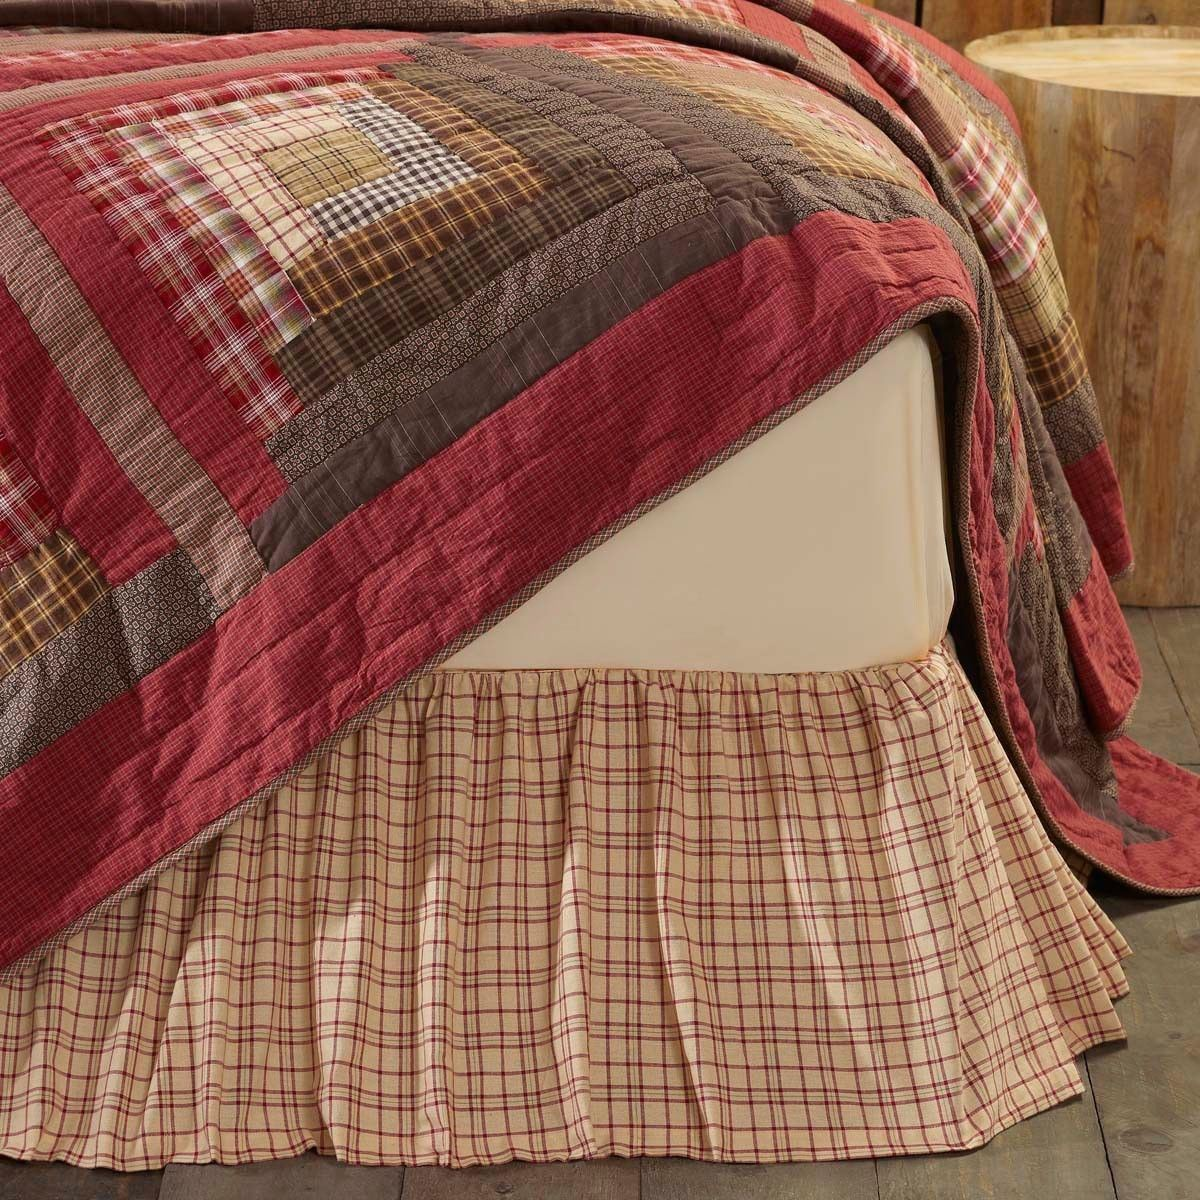 Gatherouge Bed jupe Cream rouge vert Plaid Country Bedroom Dust Ruffle Tacoma